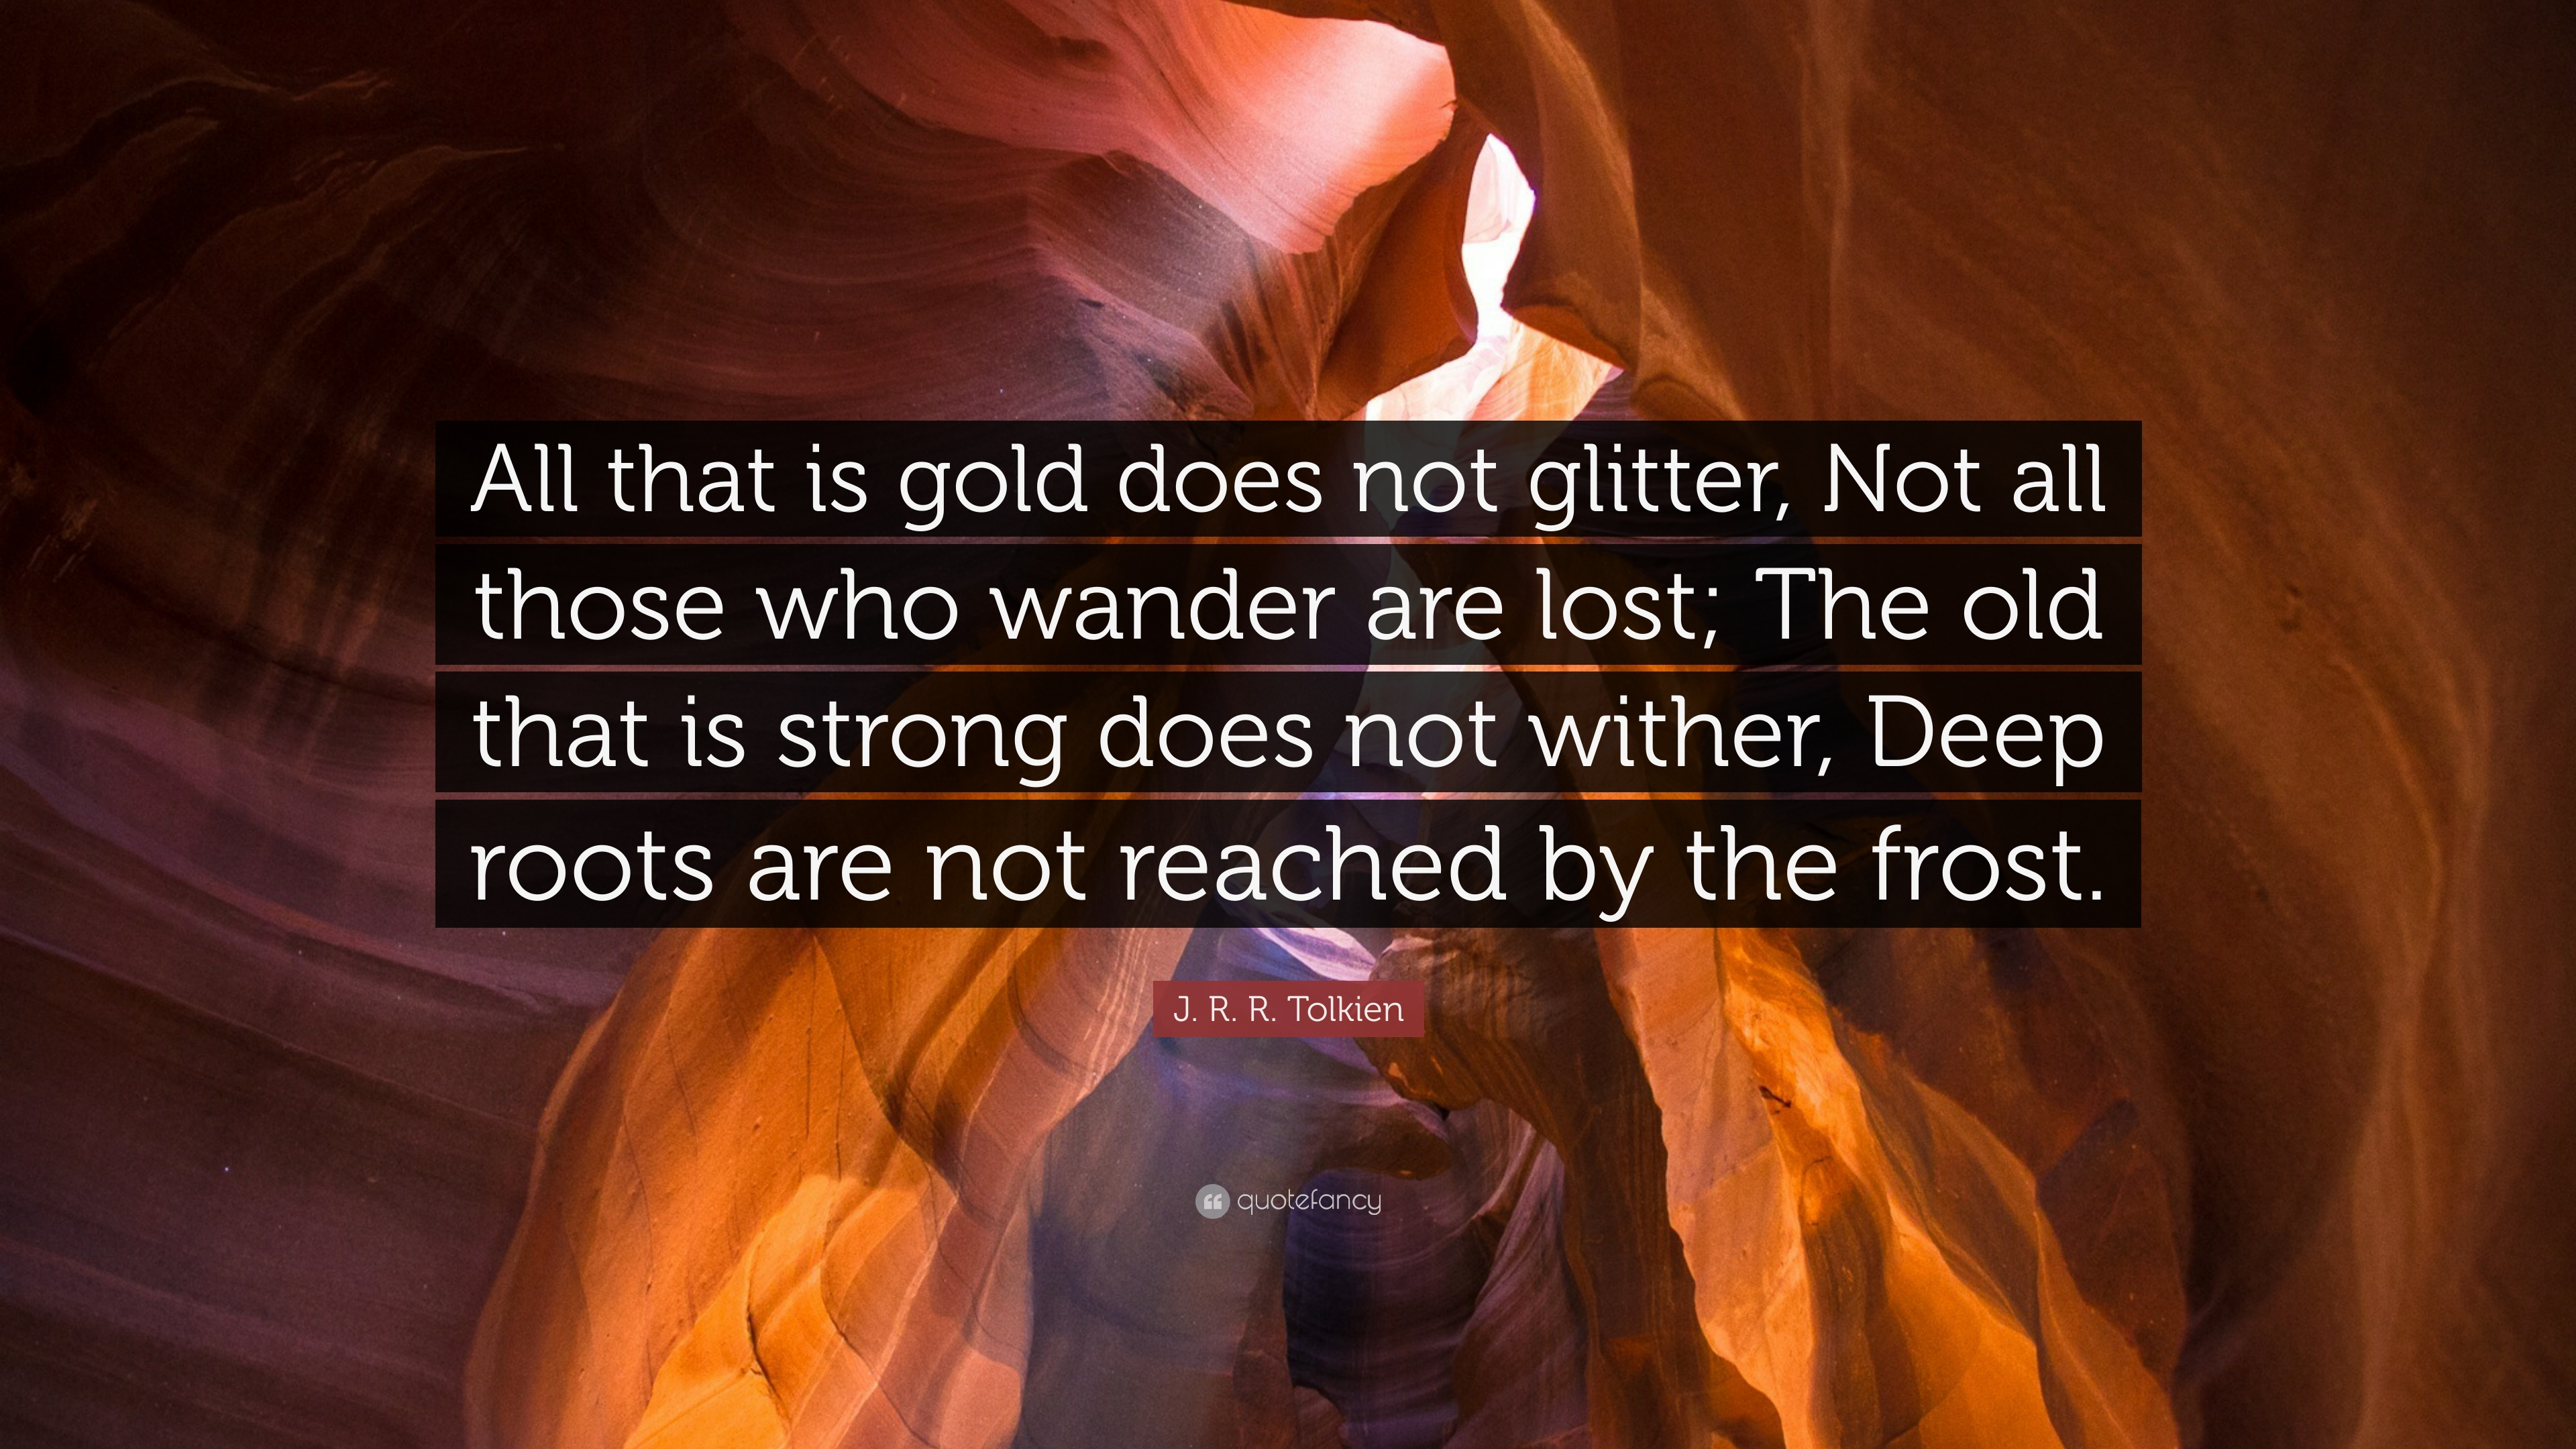 All that is gold does not